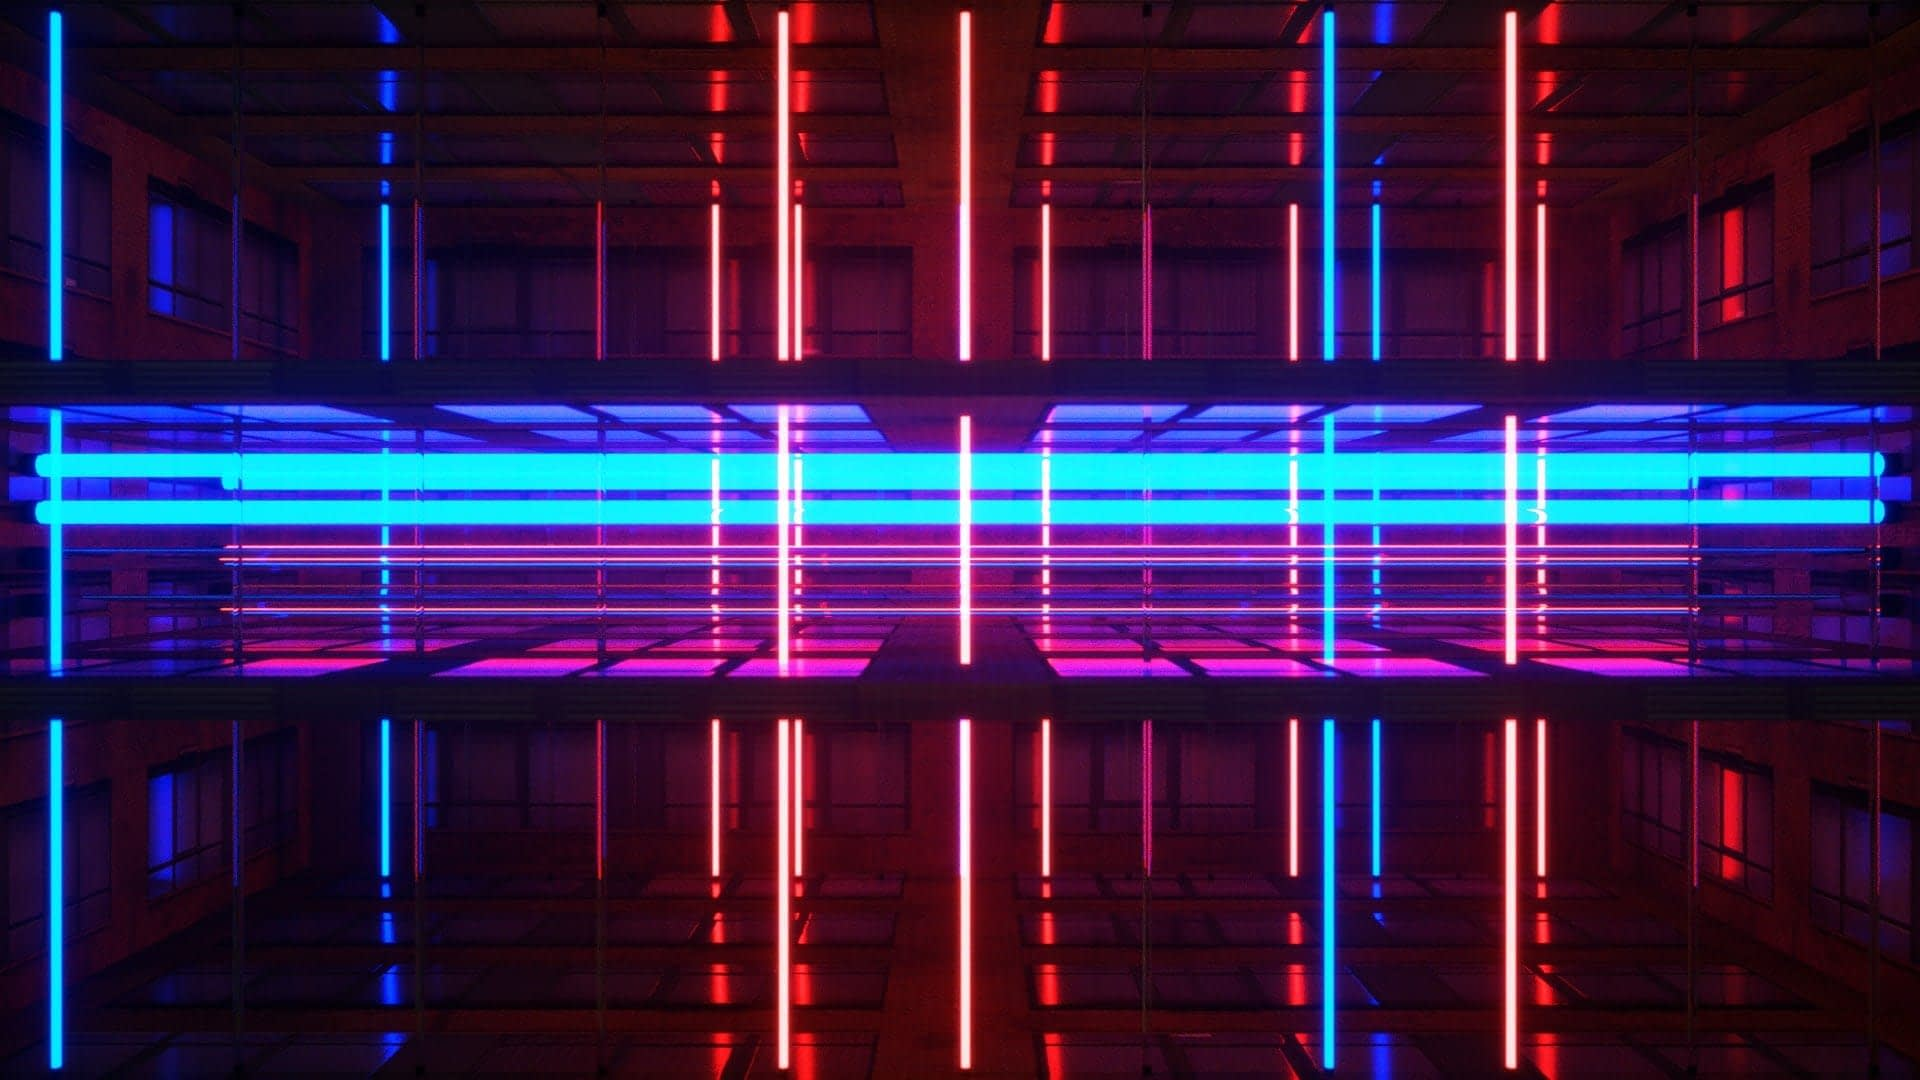 Neon Rooms VJ Pack by Ghosteam - Neon building